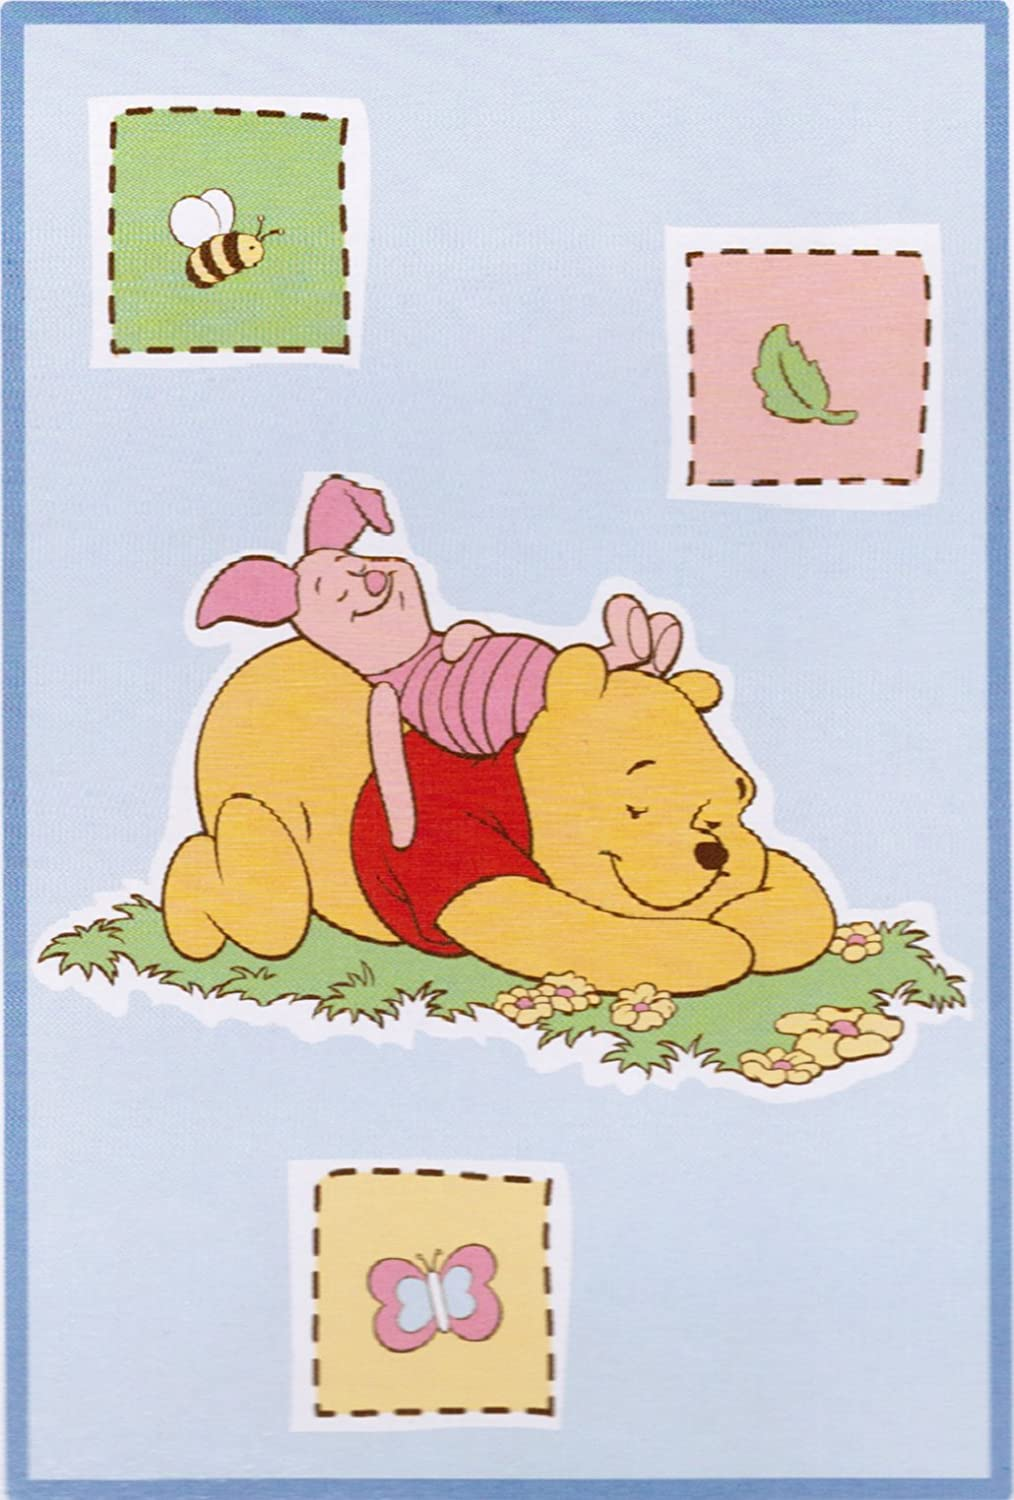 Disney Baby Winnie the Pooh Bedtime Stories Luxury Plush Throw Blanket (30 in. x 45 in.) Crown Craft Infant Products Inc.